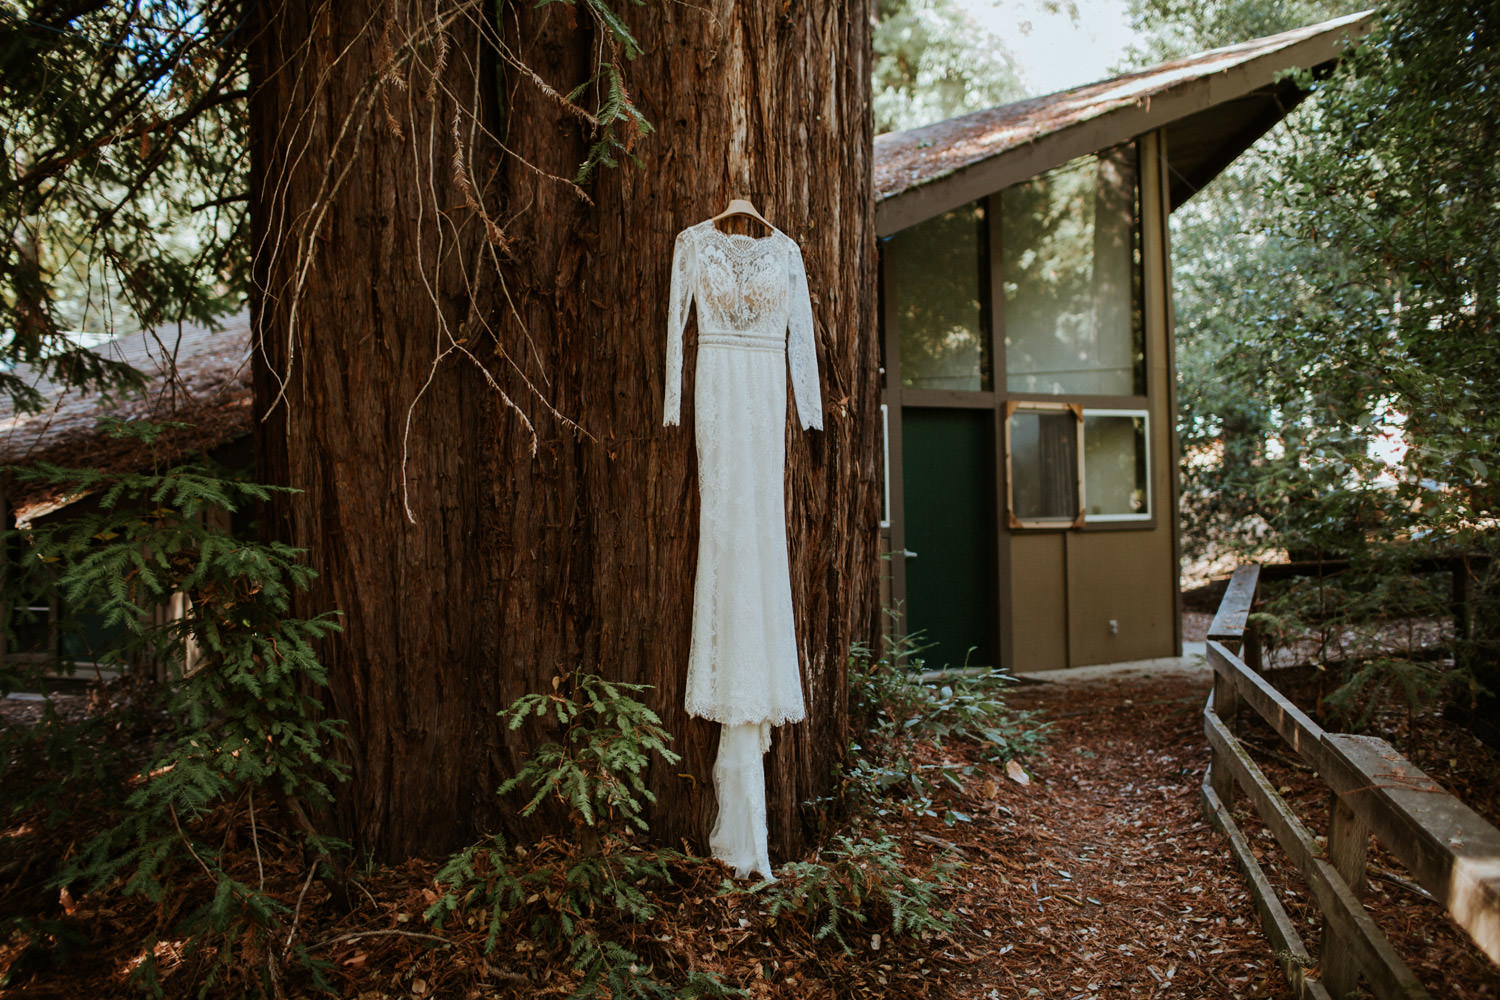 Pictures of the wedding dress hanging on the redwood in YMCA Camp campbell in California